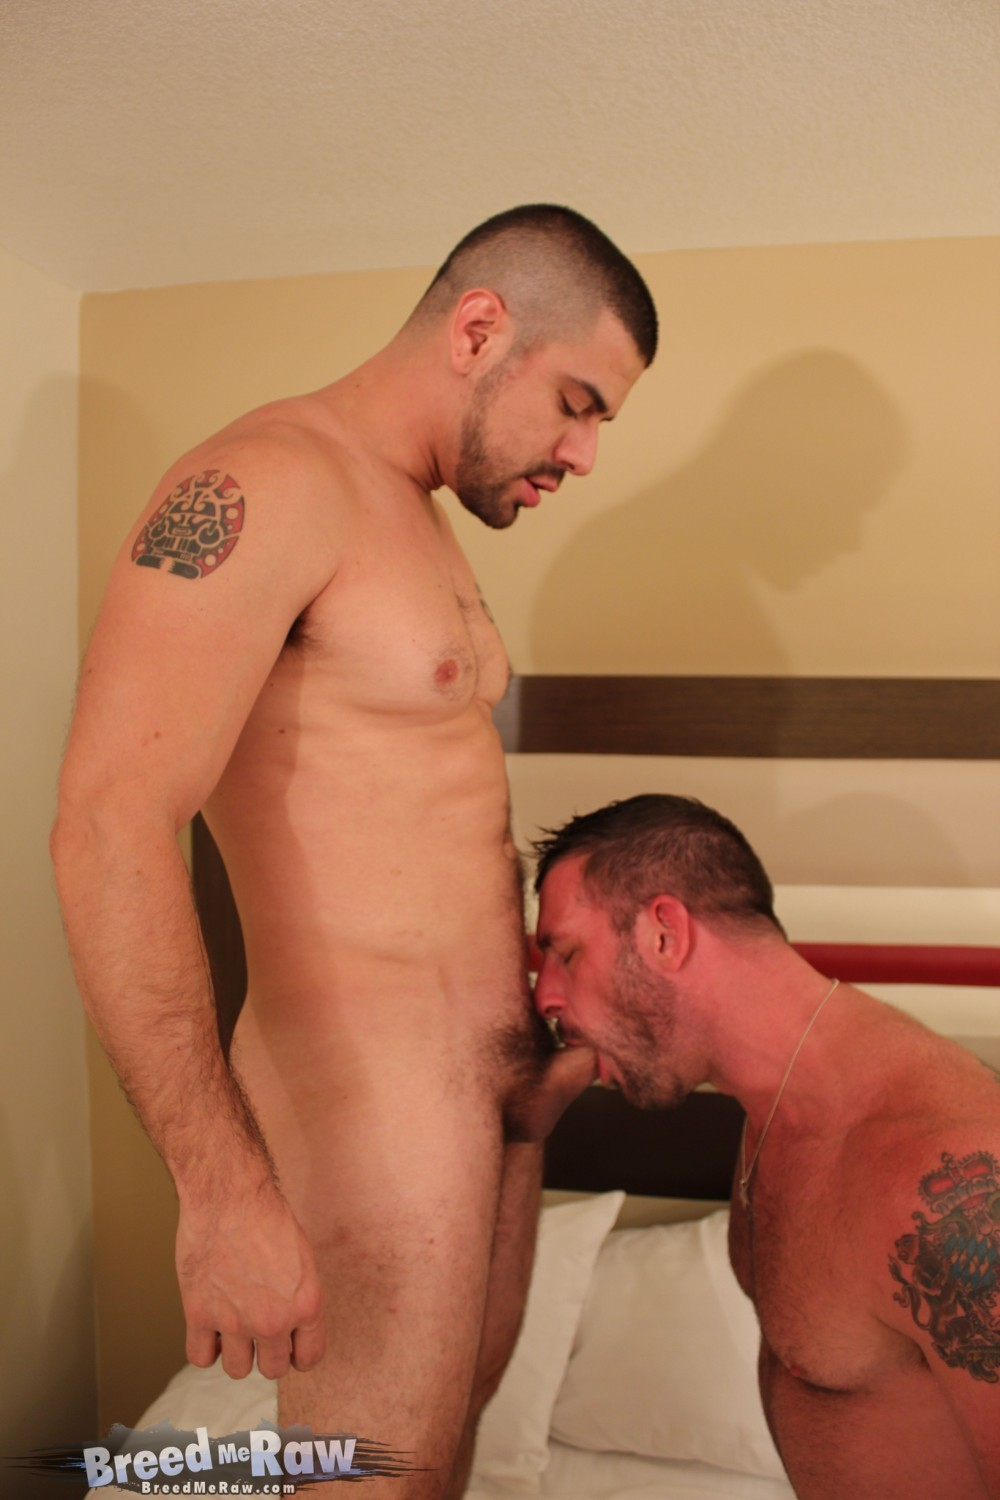 Breed Me Raw Morgan Black and Dominic Sol bareback 05 Breed Me Raw: Morgan Black and Dominic Sol